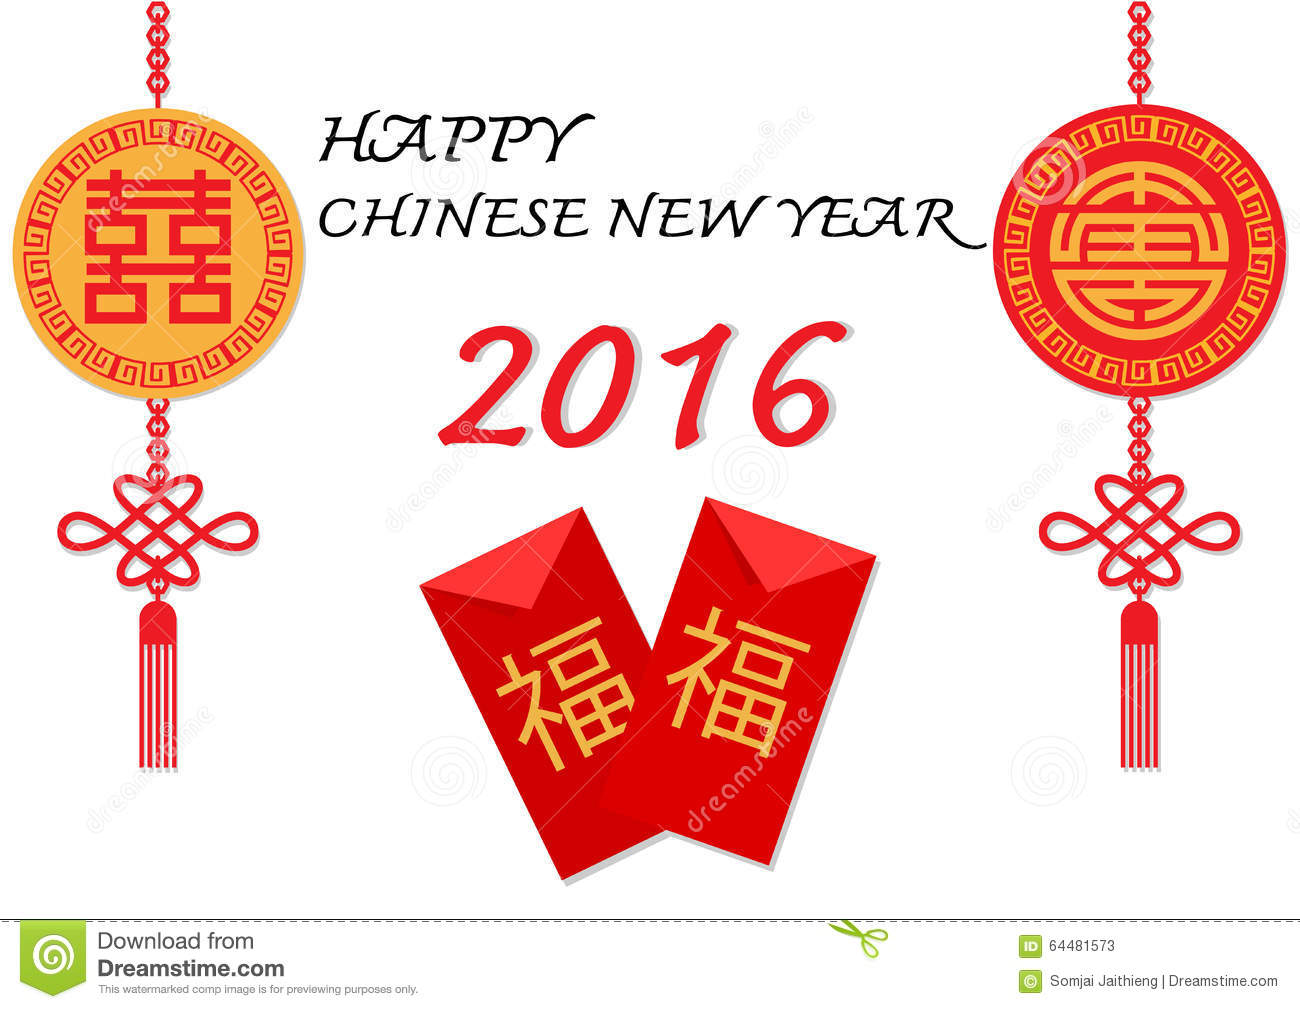 happy chinese new year 2016 banner design